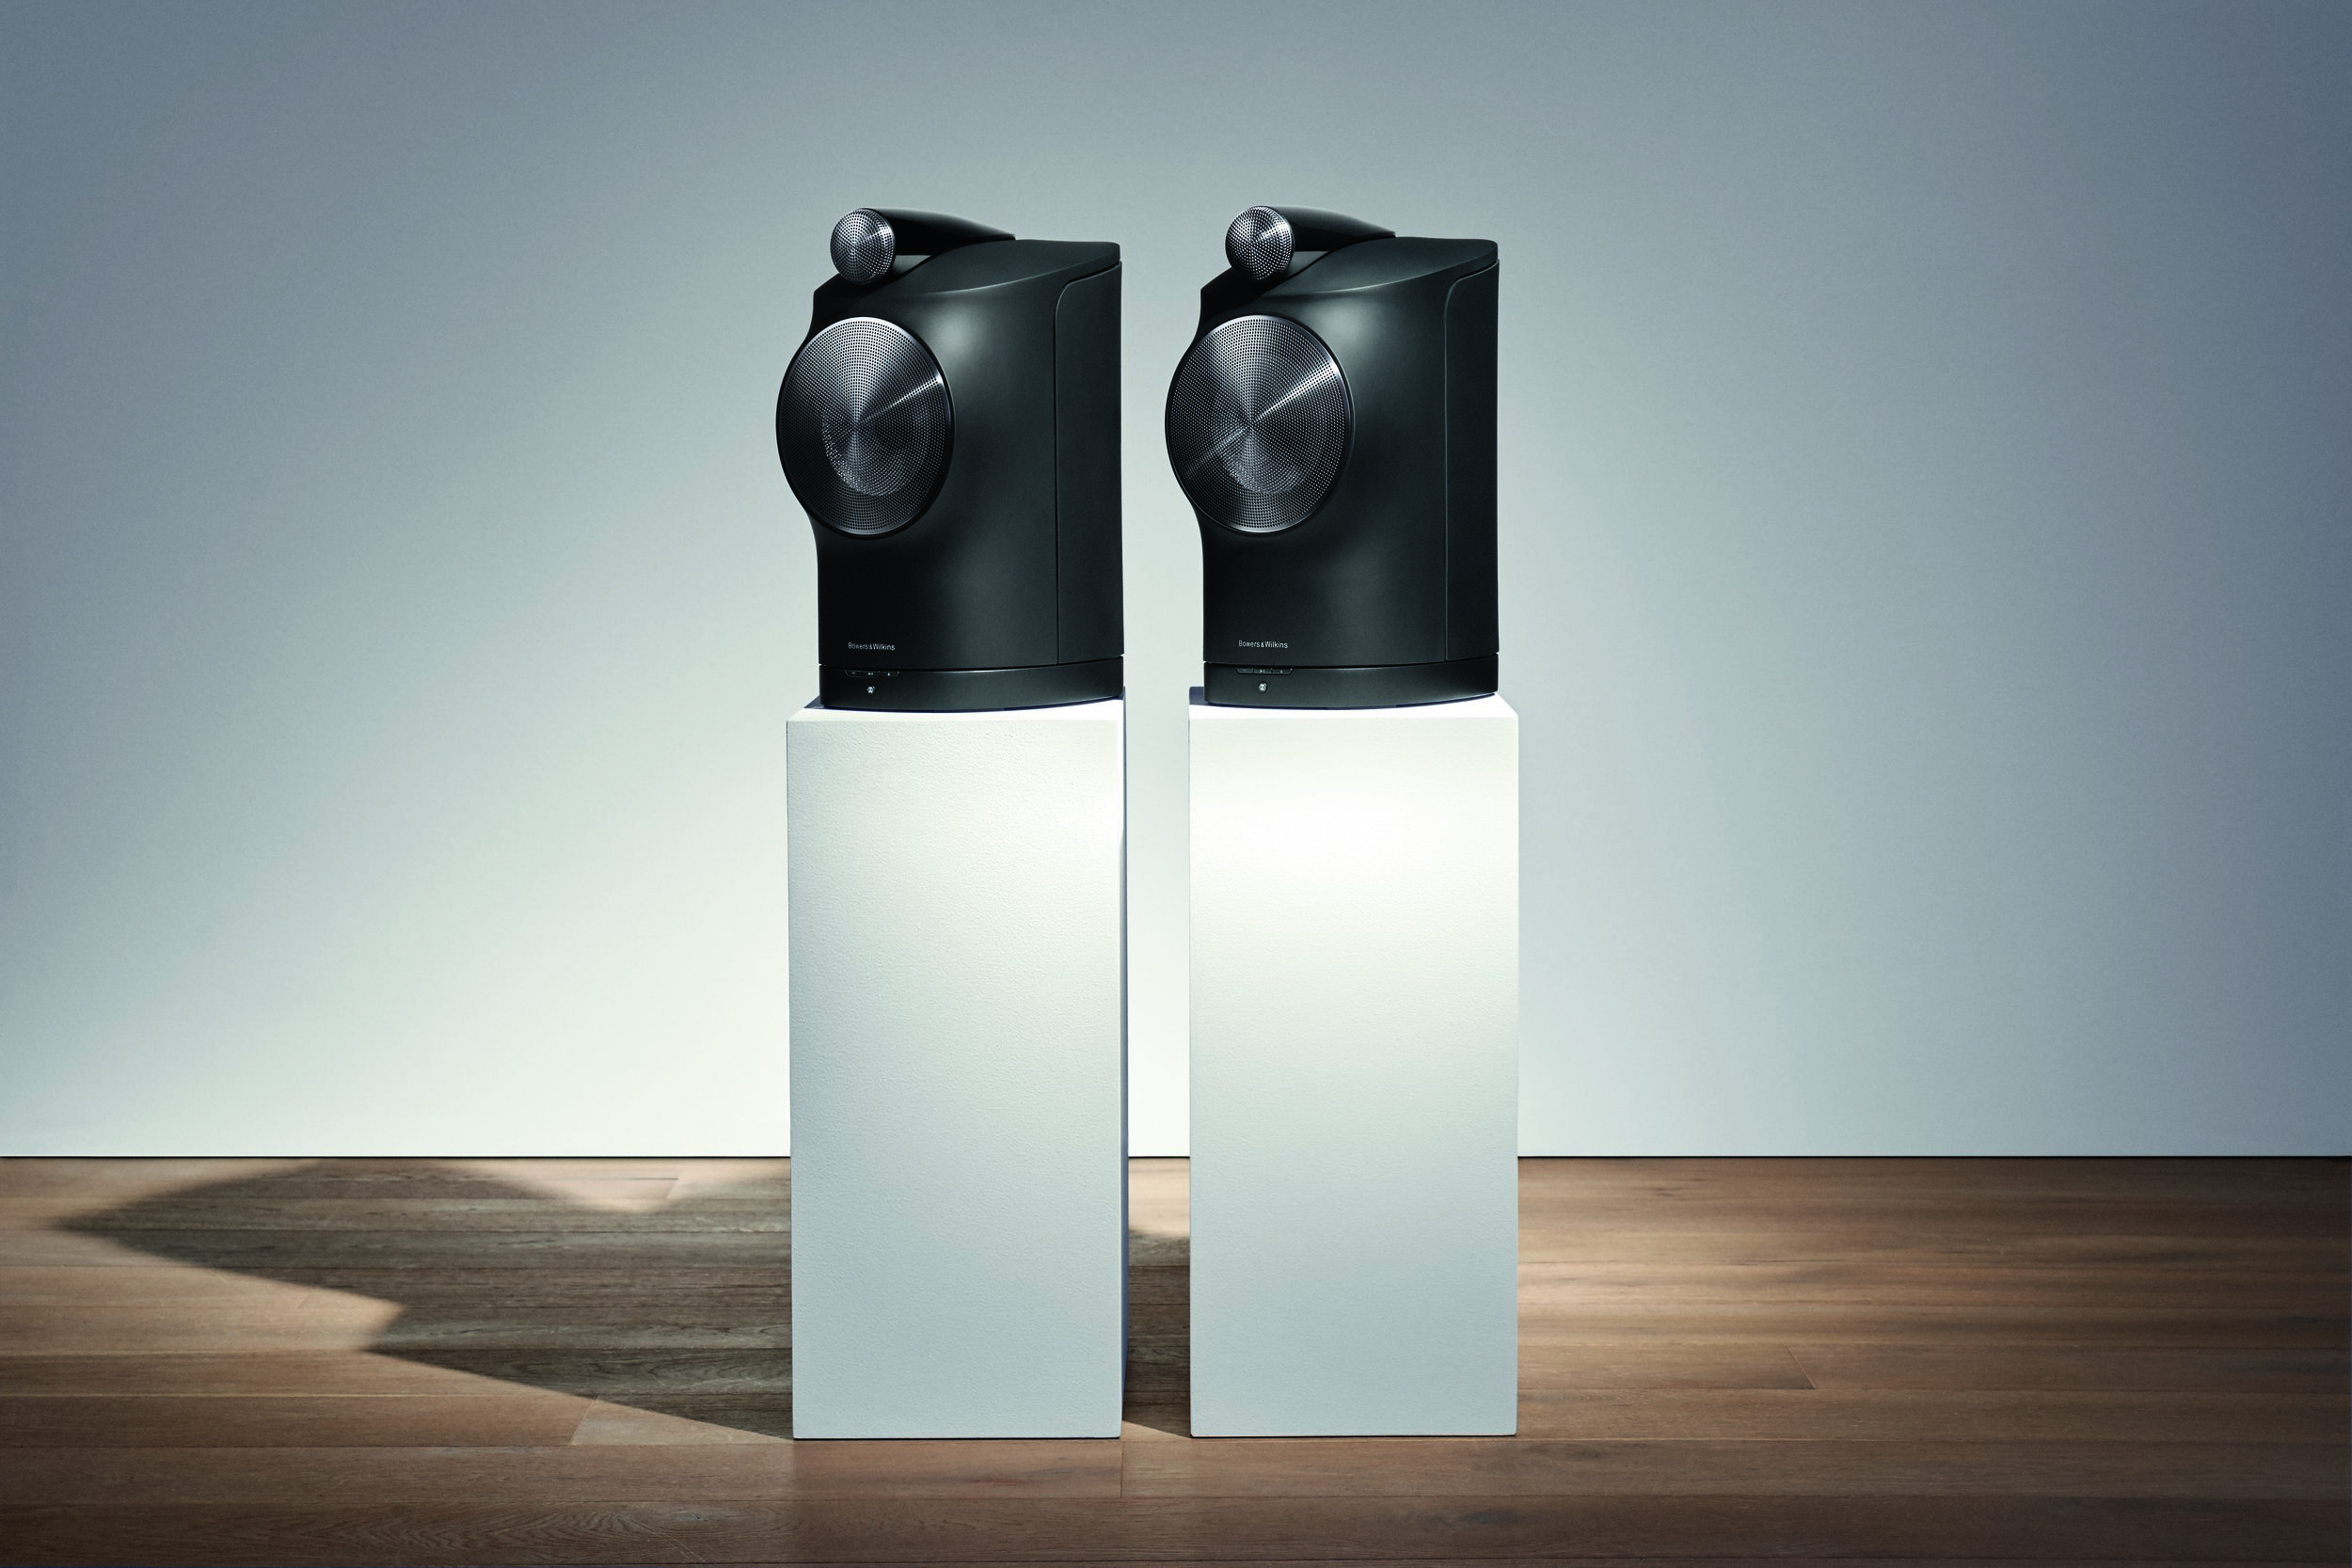 Formation Duo; featuring Tweeter-On-Top technology and Continuum cones for wired fidelity, wirelessly*.